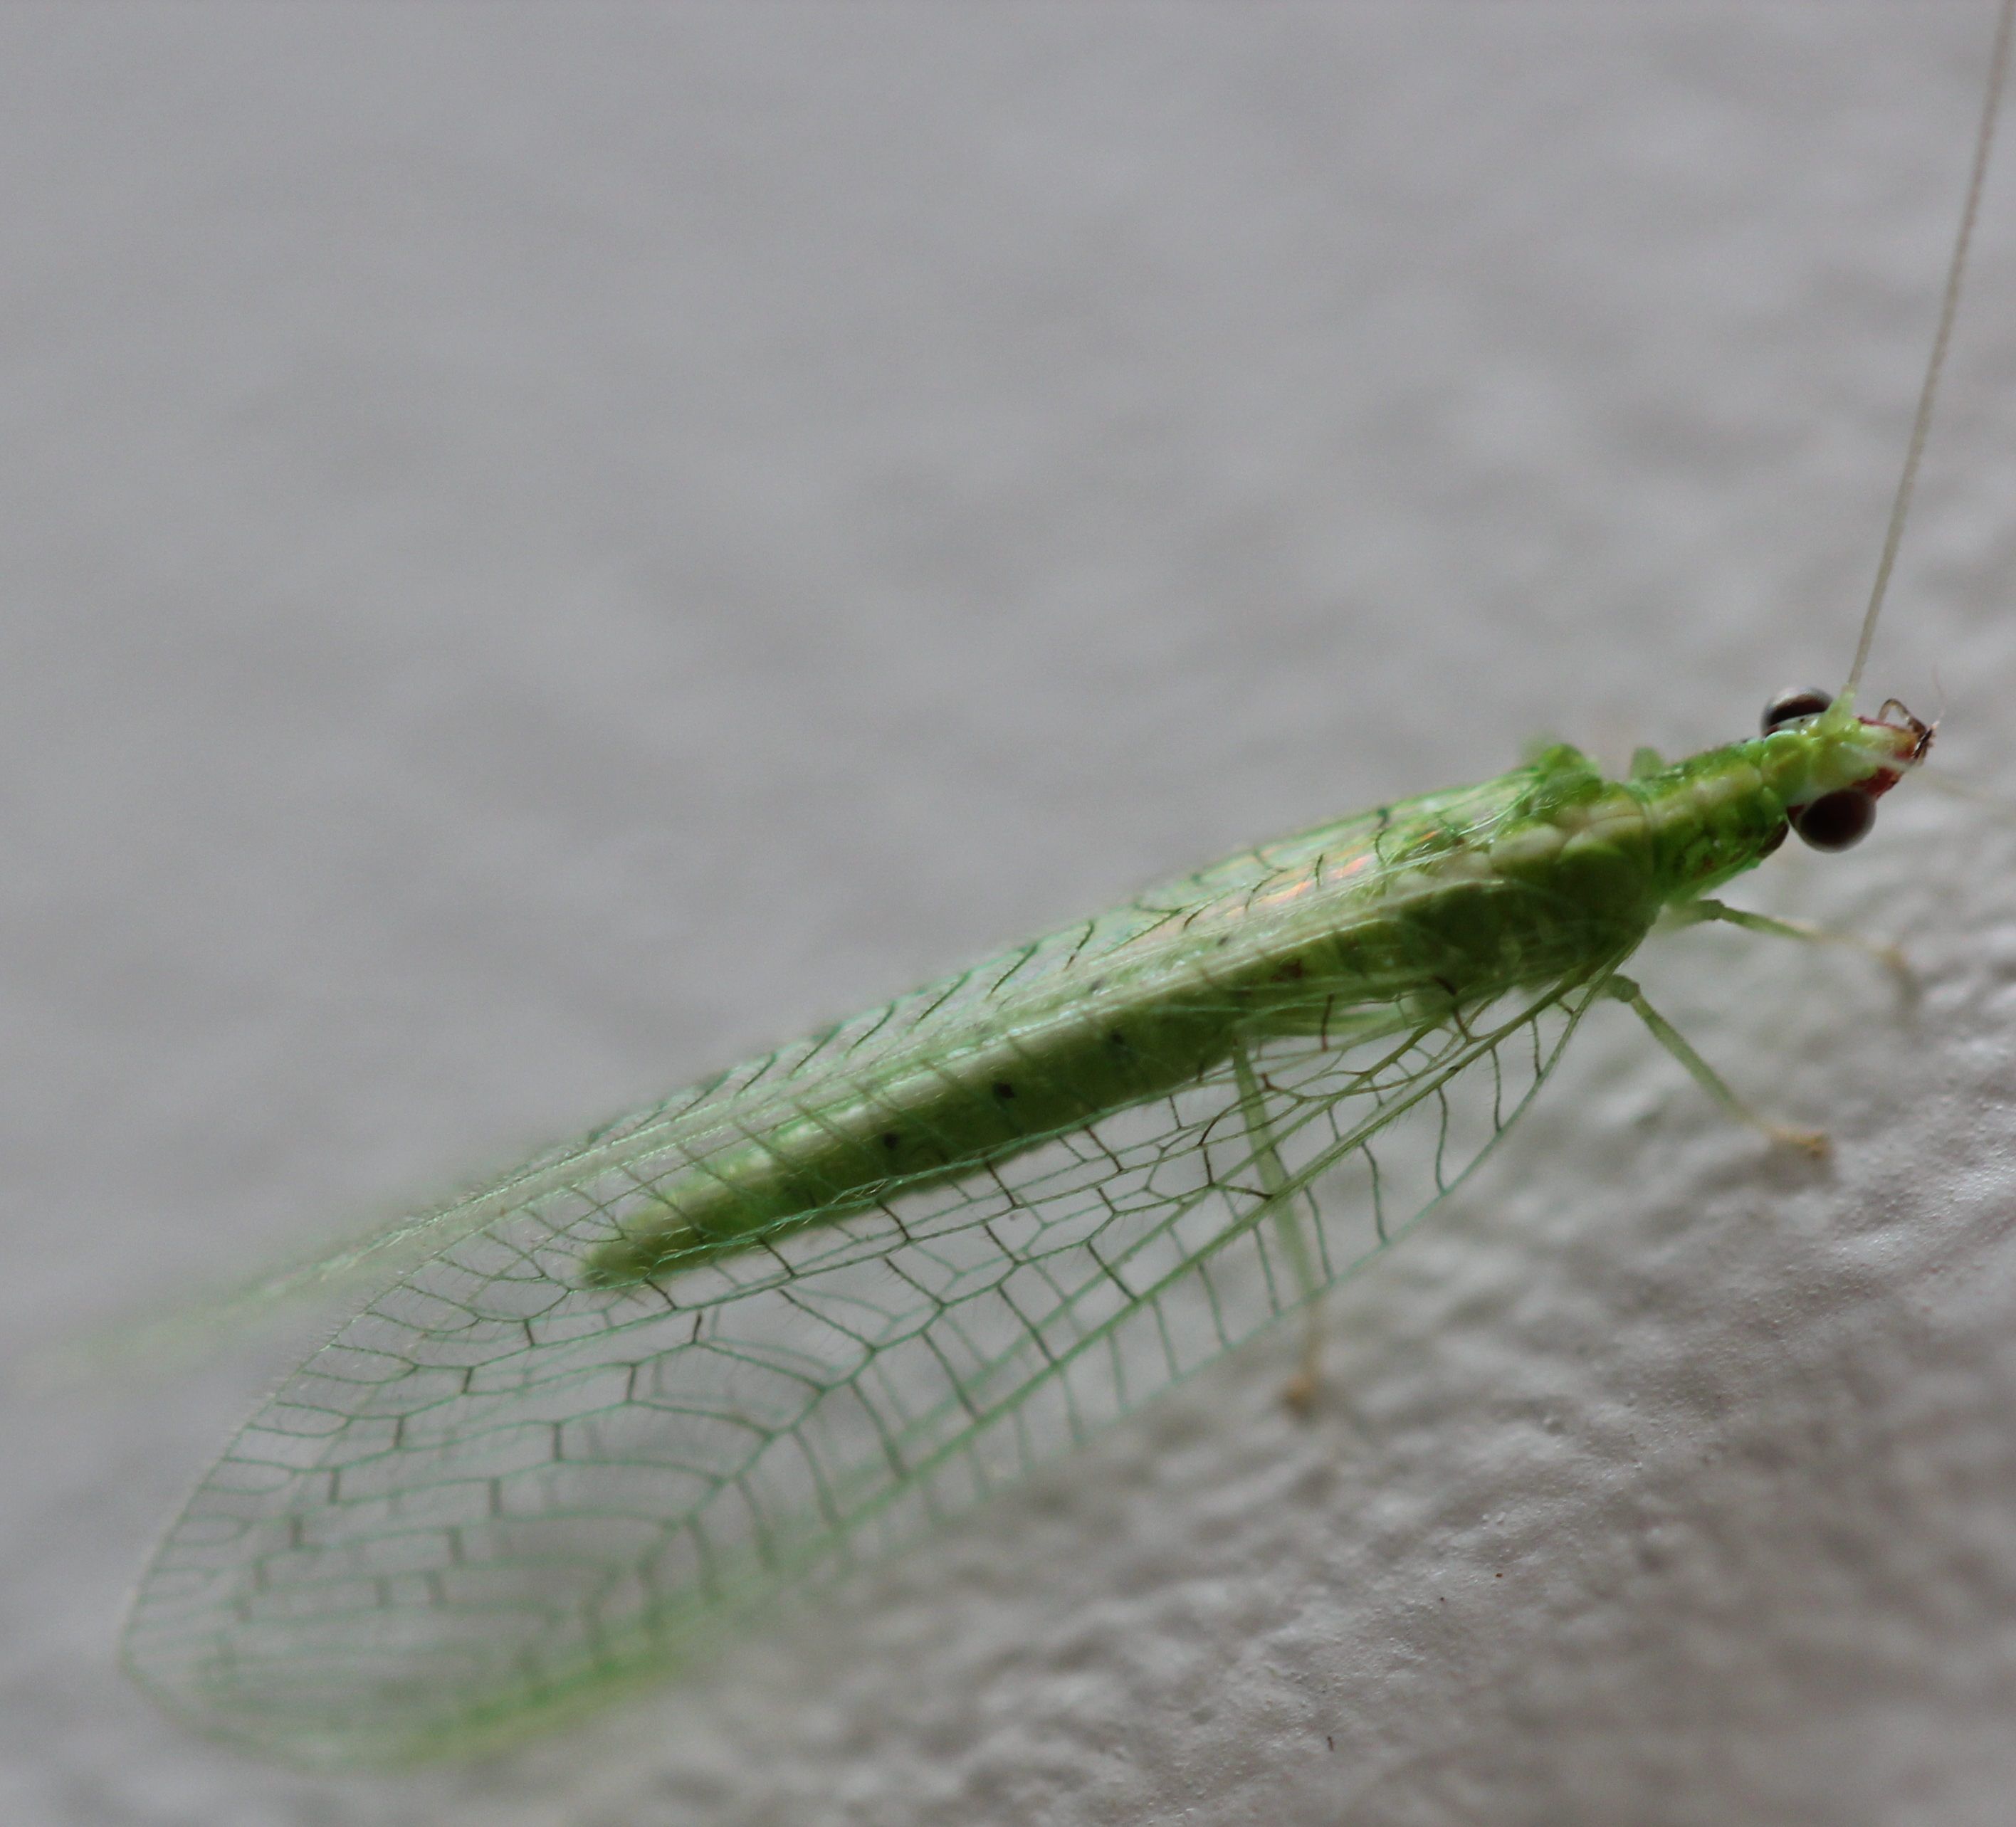 File:Green Lacewing Insect.jpg